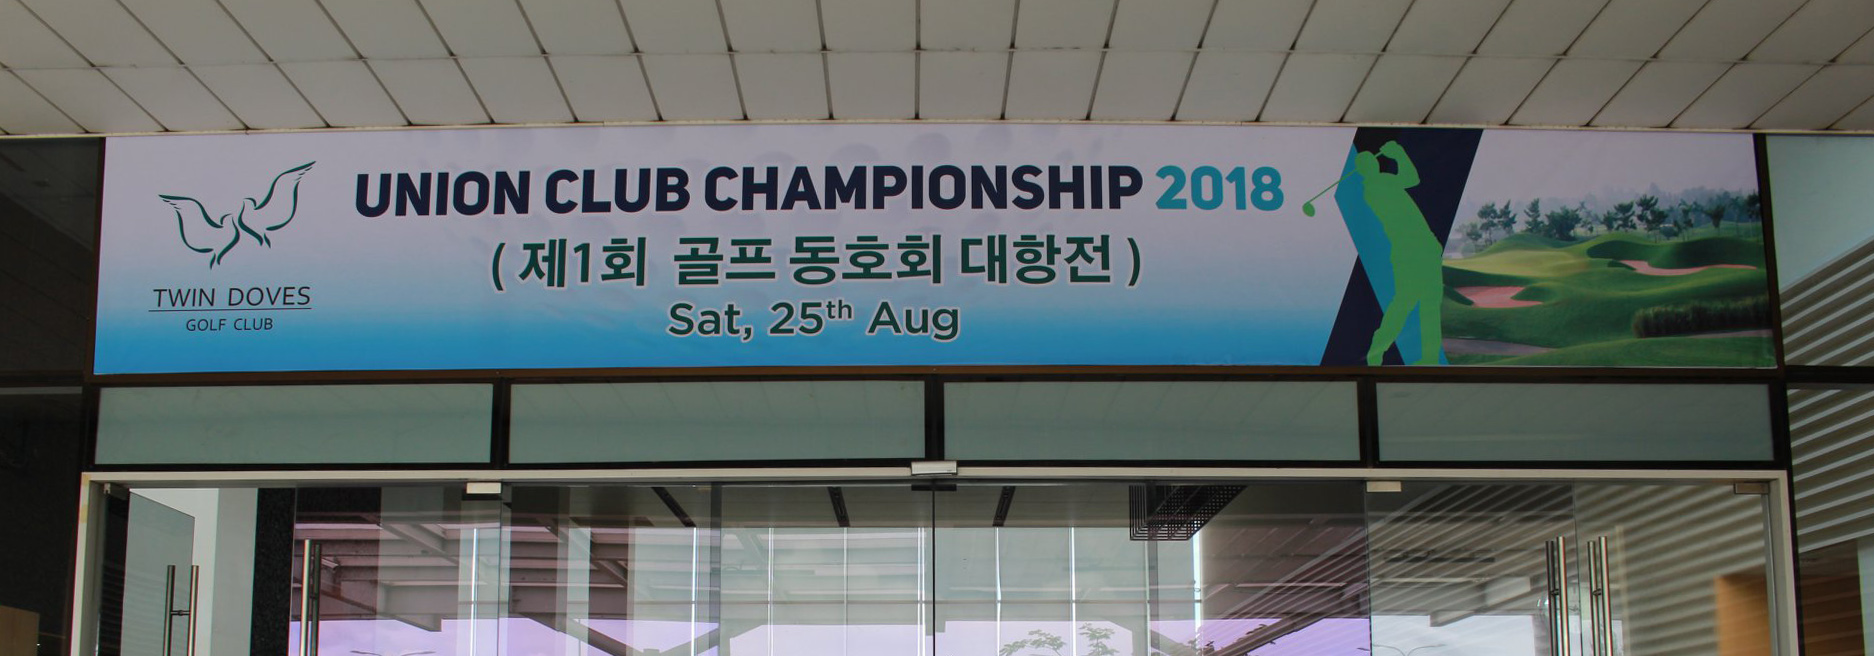 UNION GOLF CHAMPIONSHIP 2018 on Sat 25th Aug.